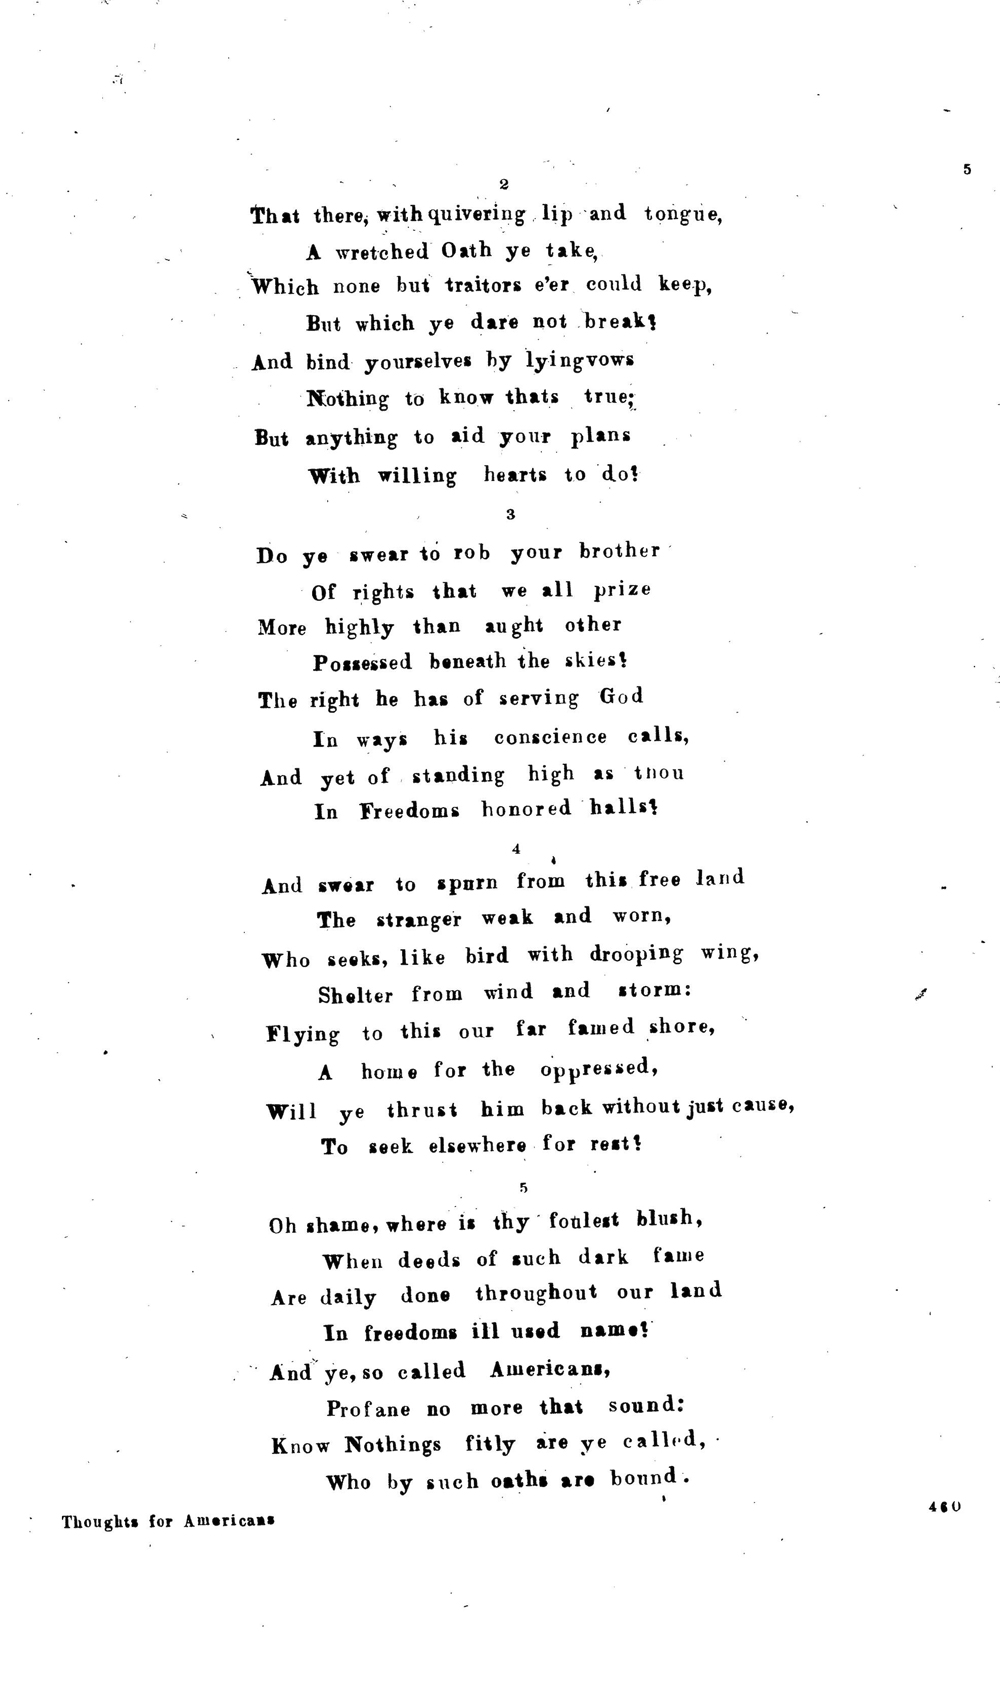 Thoughts For Americans Lyric Sheet 1856